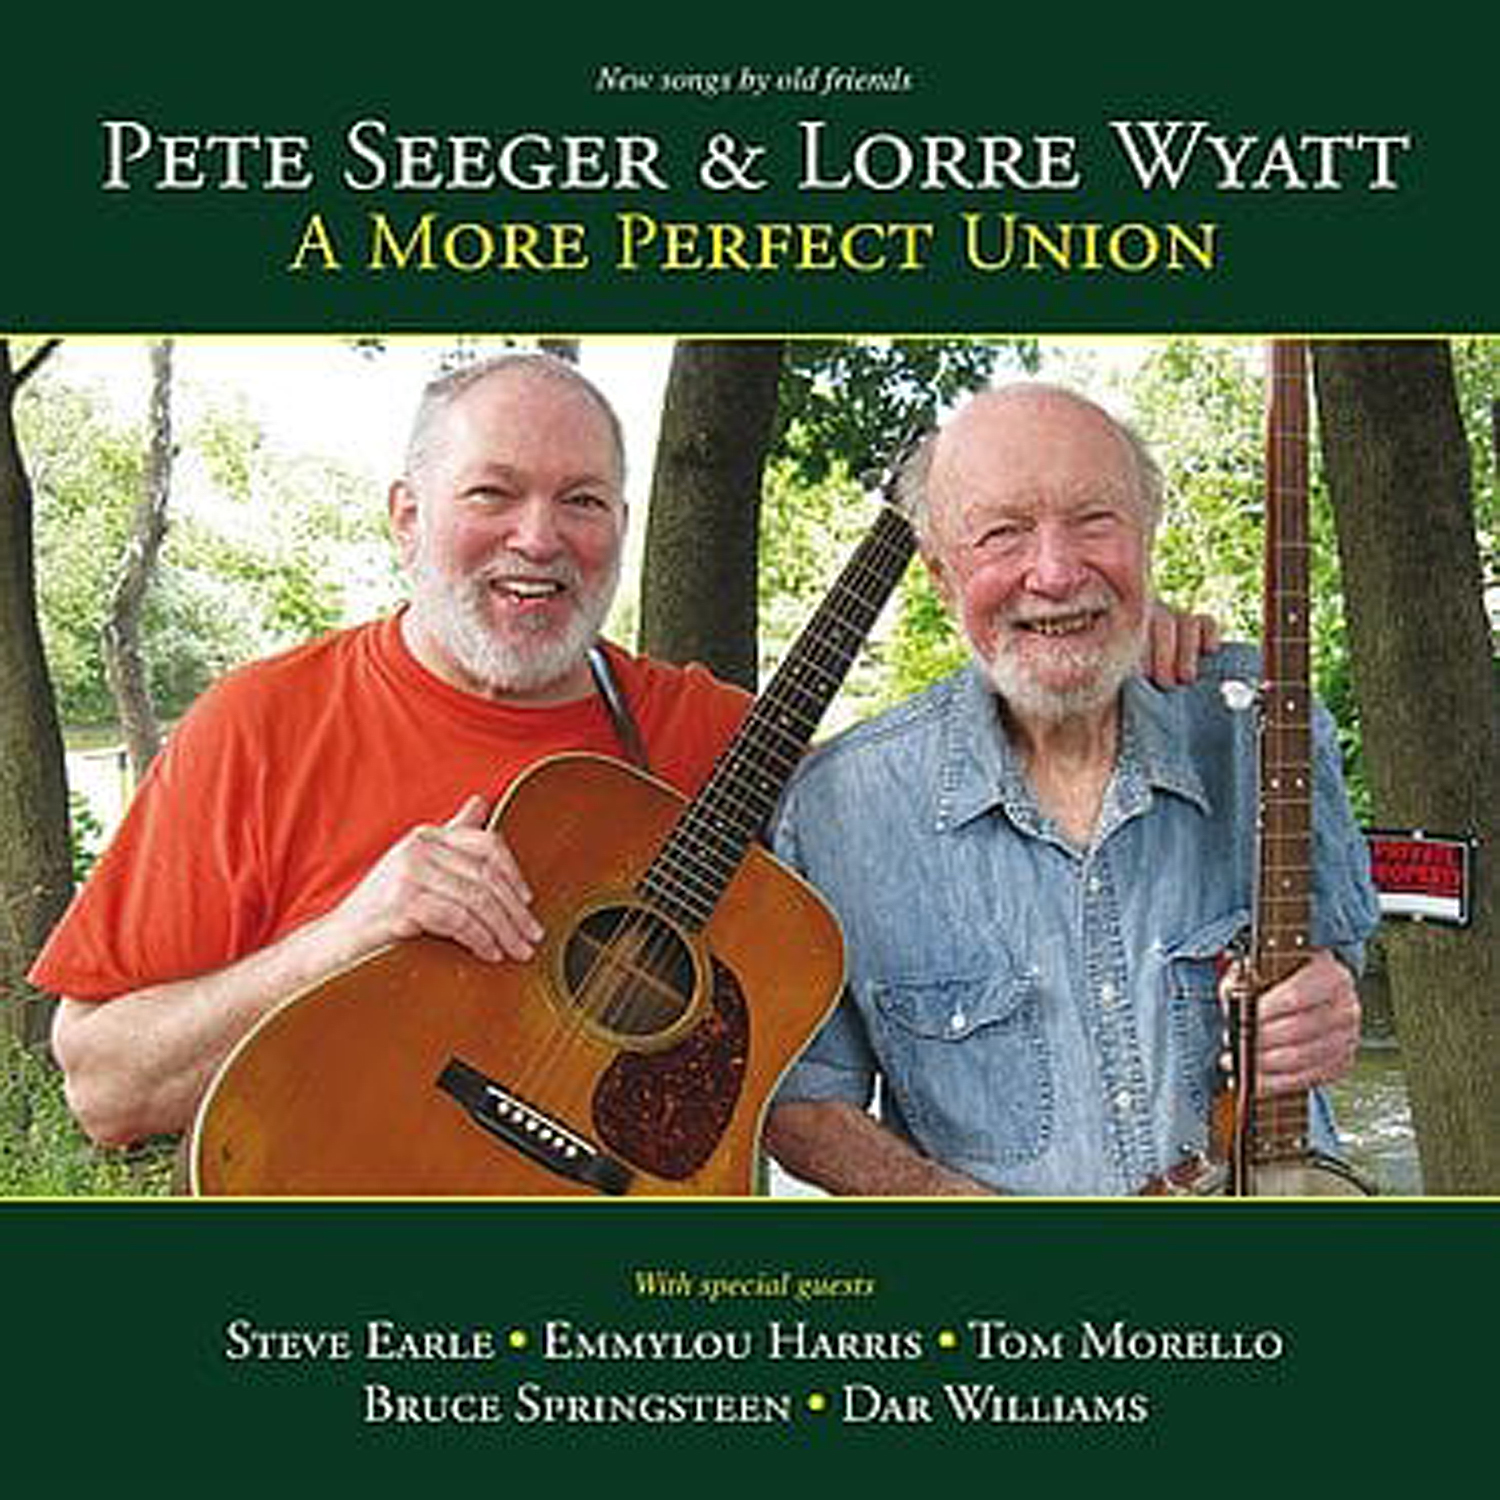 Pete Seeger & Lorre Wyatt | A More Perfect Union (2012) - Appleseed  Recordings